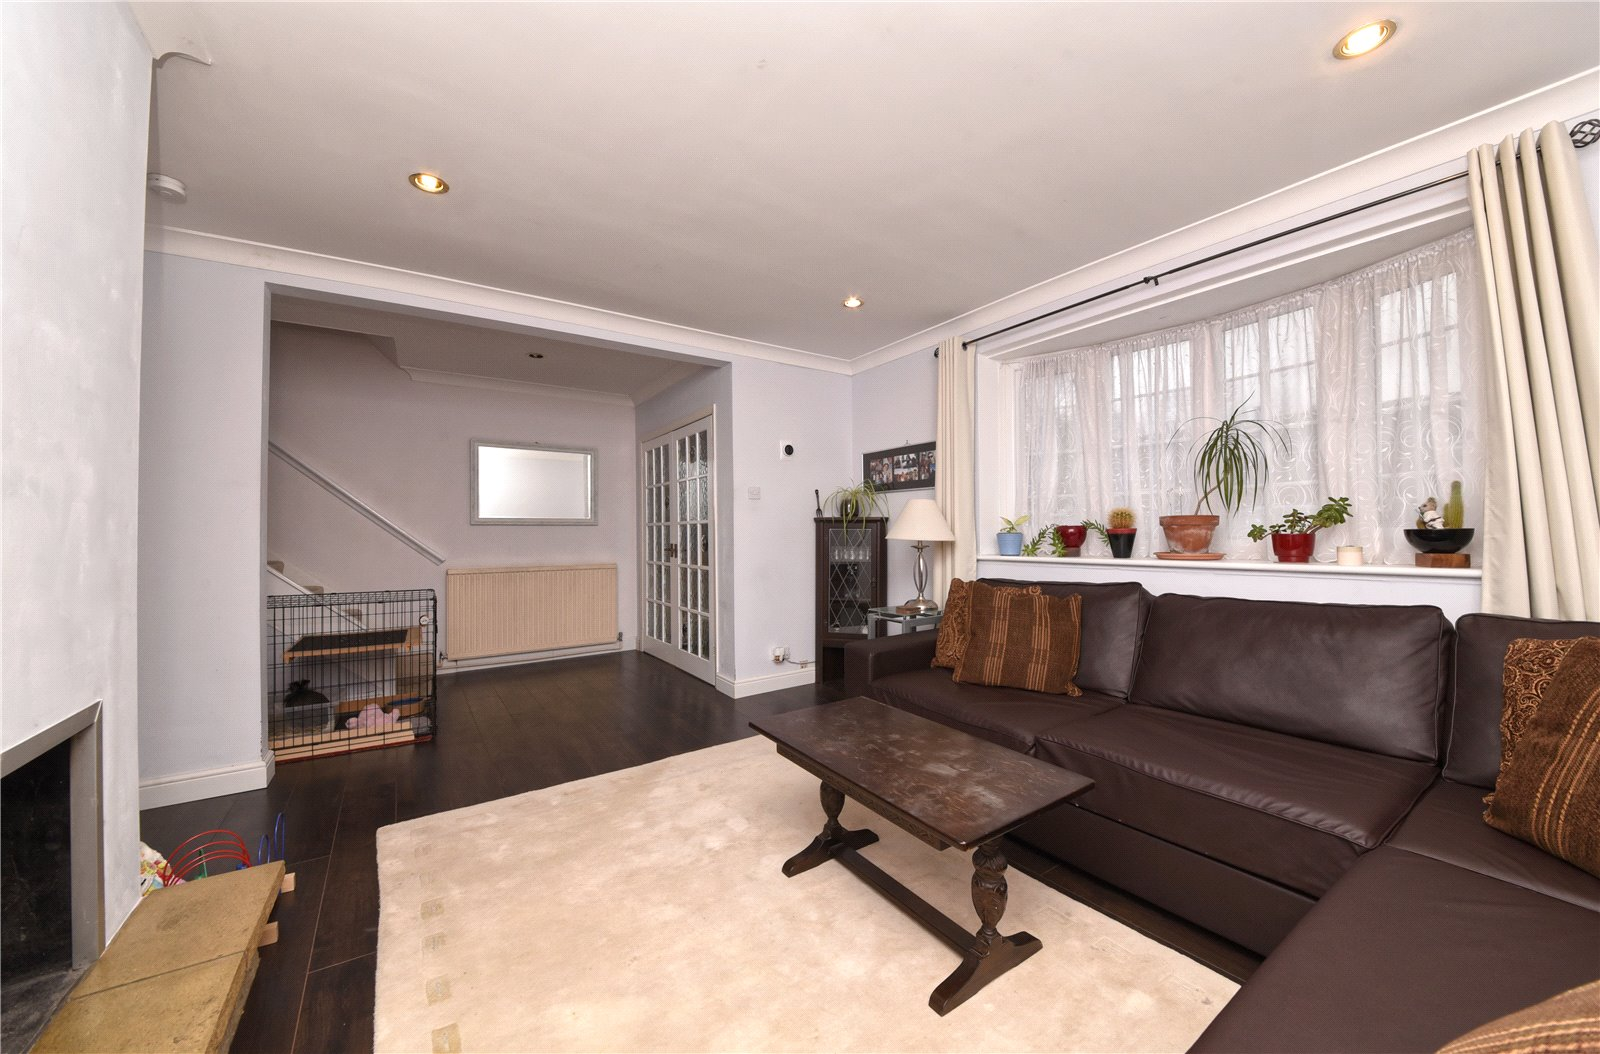 3 bed house for sale in Edgware, HA8 8XT 4